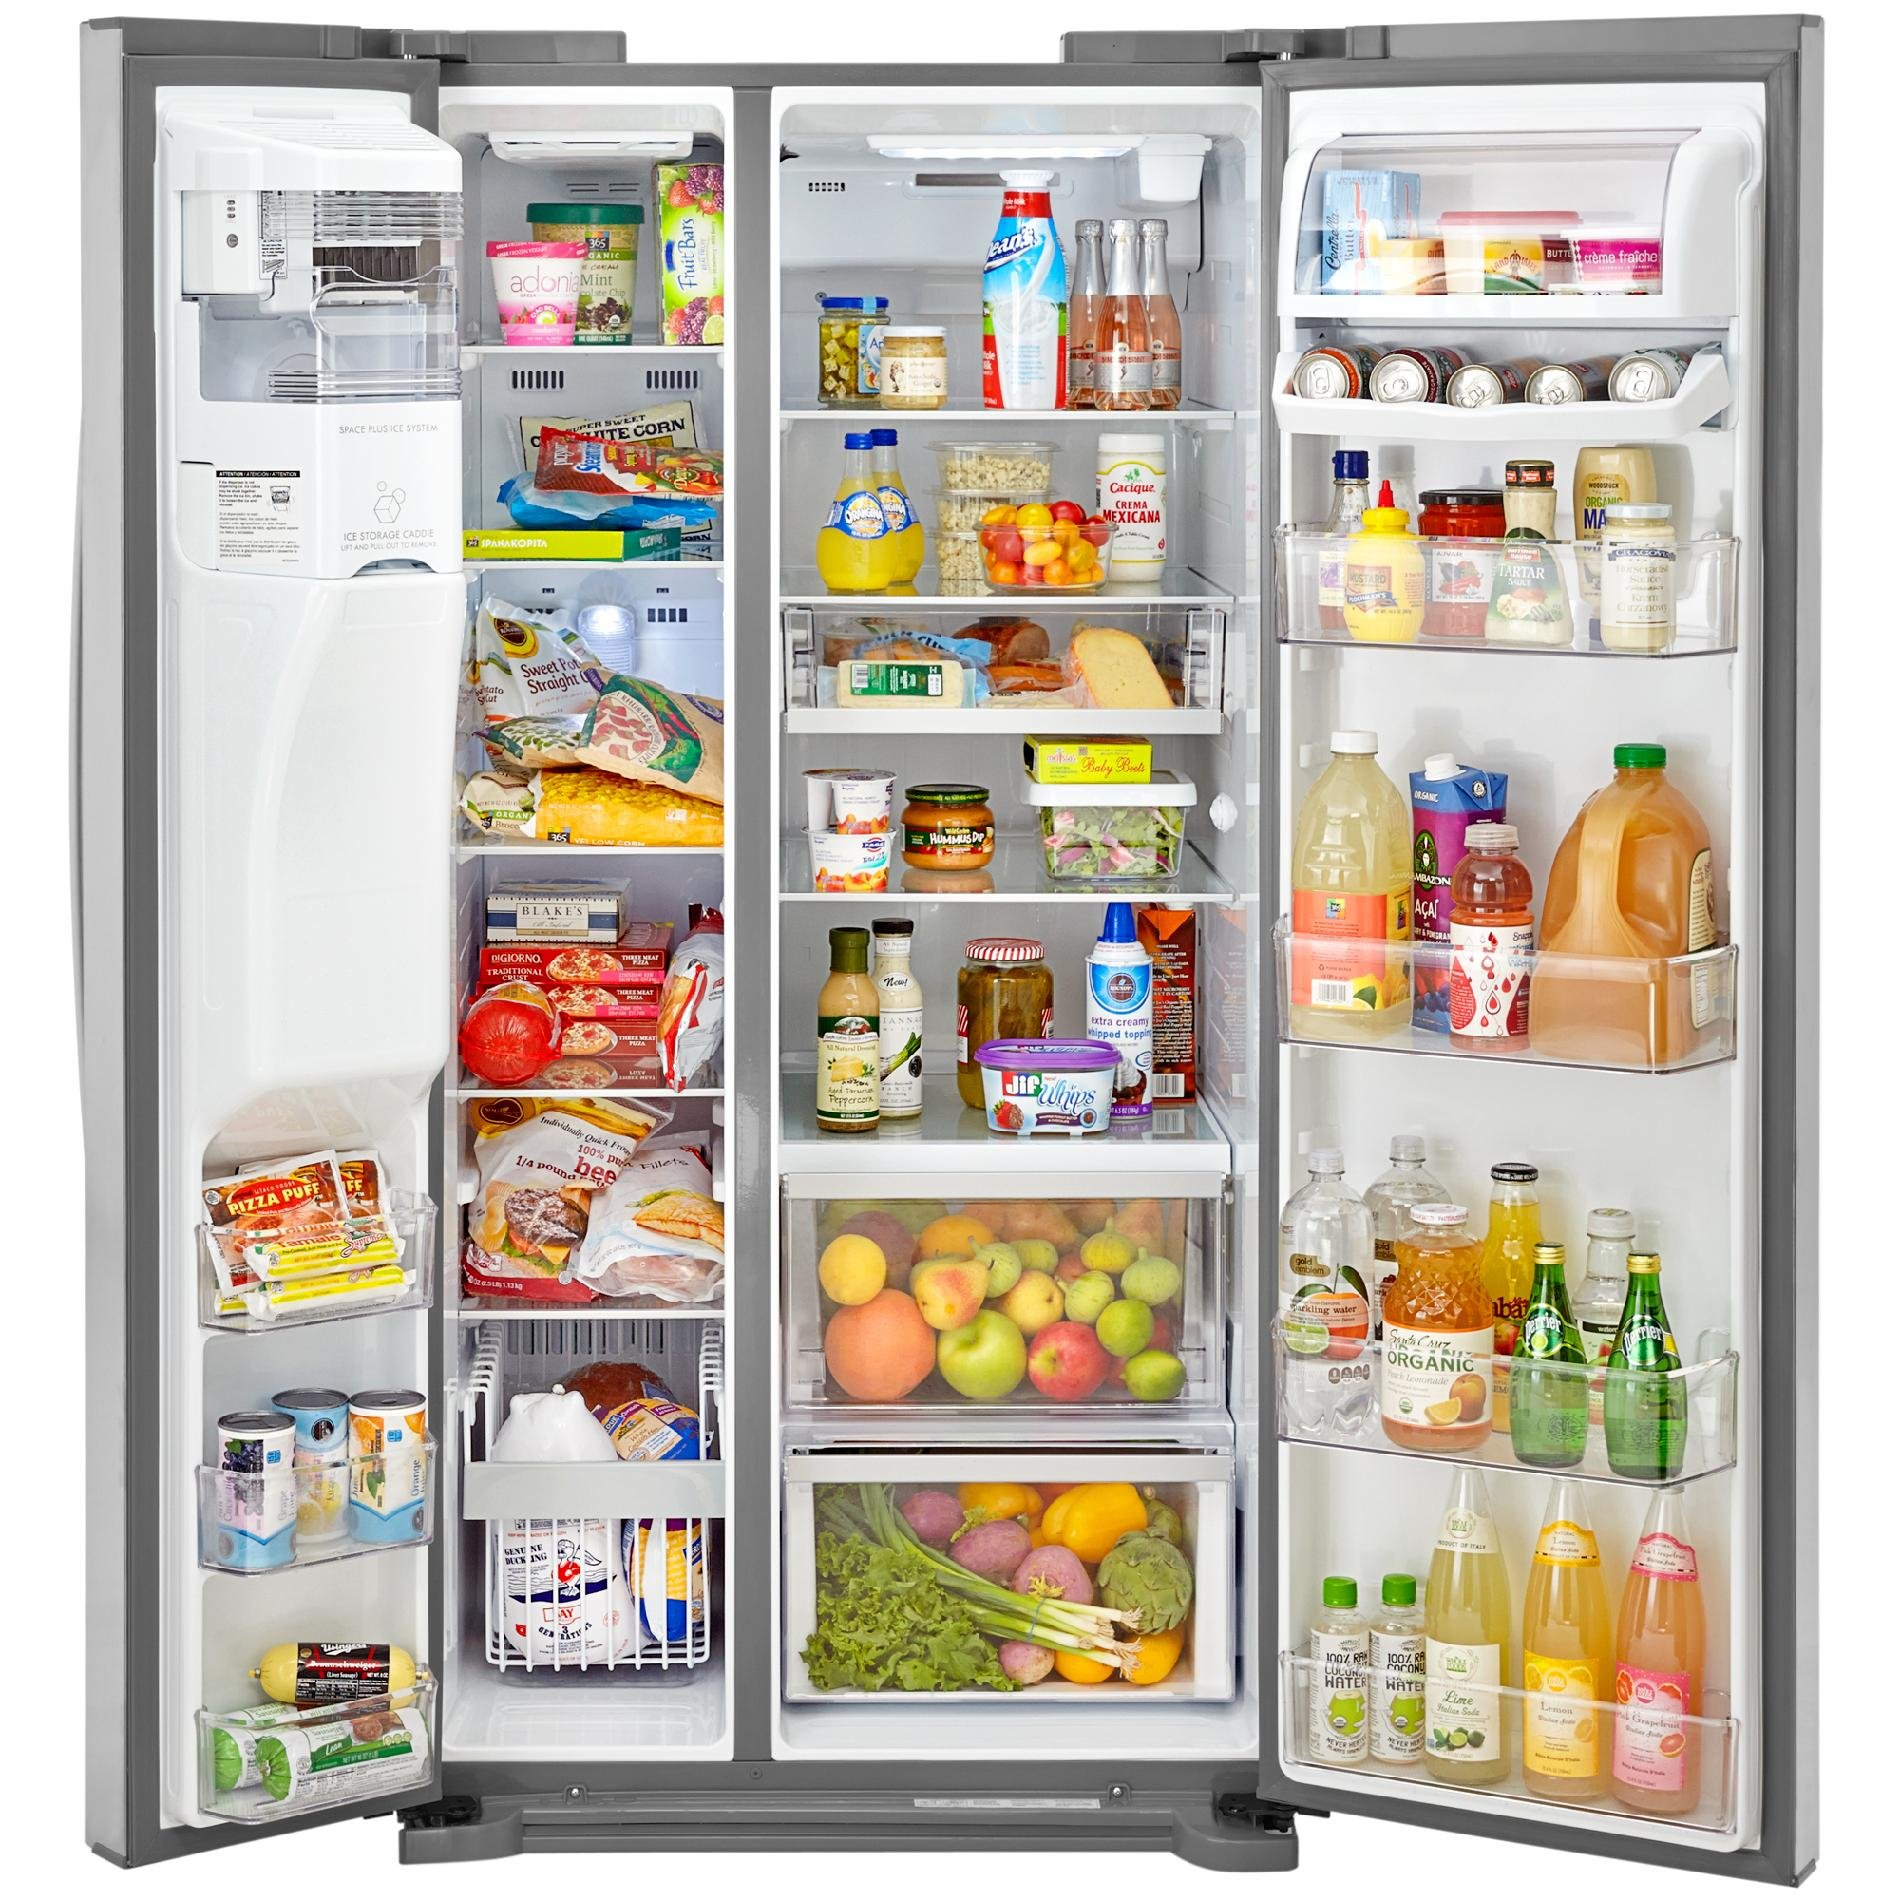 Kenmore Elite 51823 21.9 cu. ft. Side-by-Side Refrigerator in Stainless Steel, includes delivery and hookup (Available in select cities only) by Kenmore (Image #6)